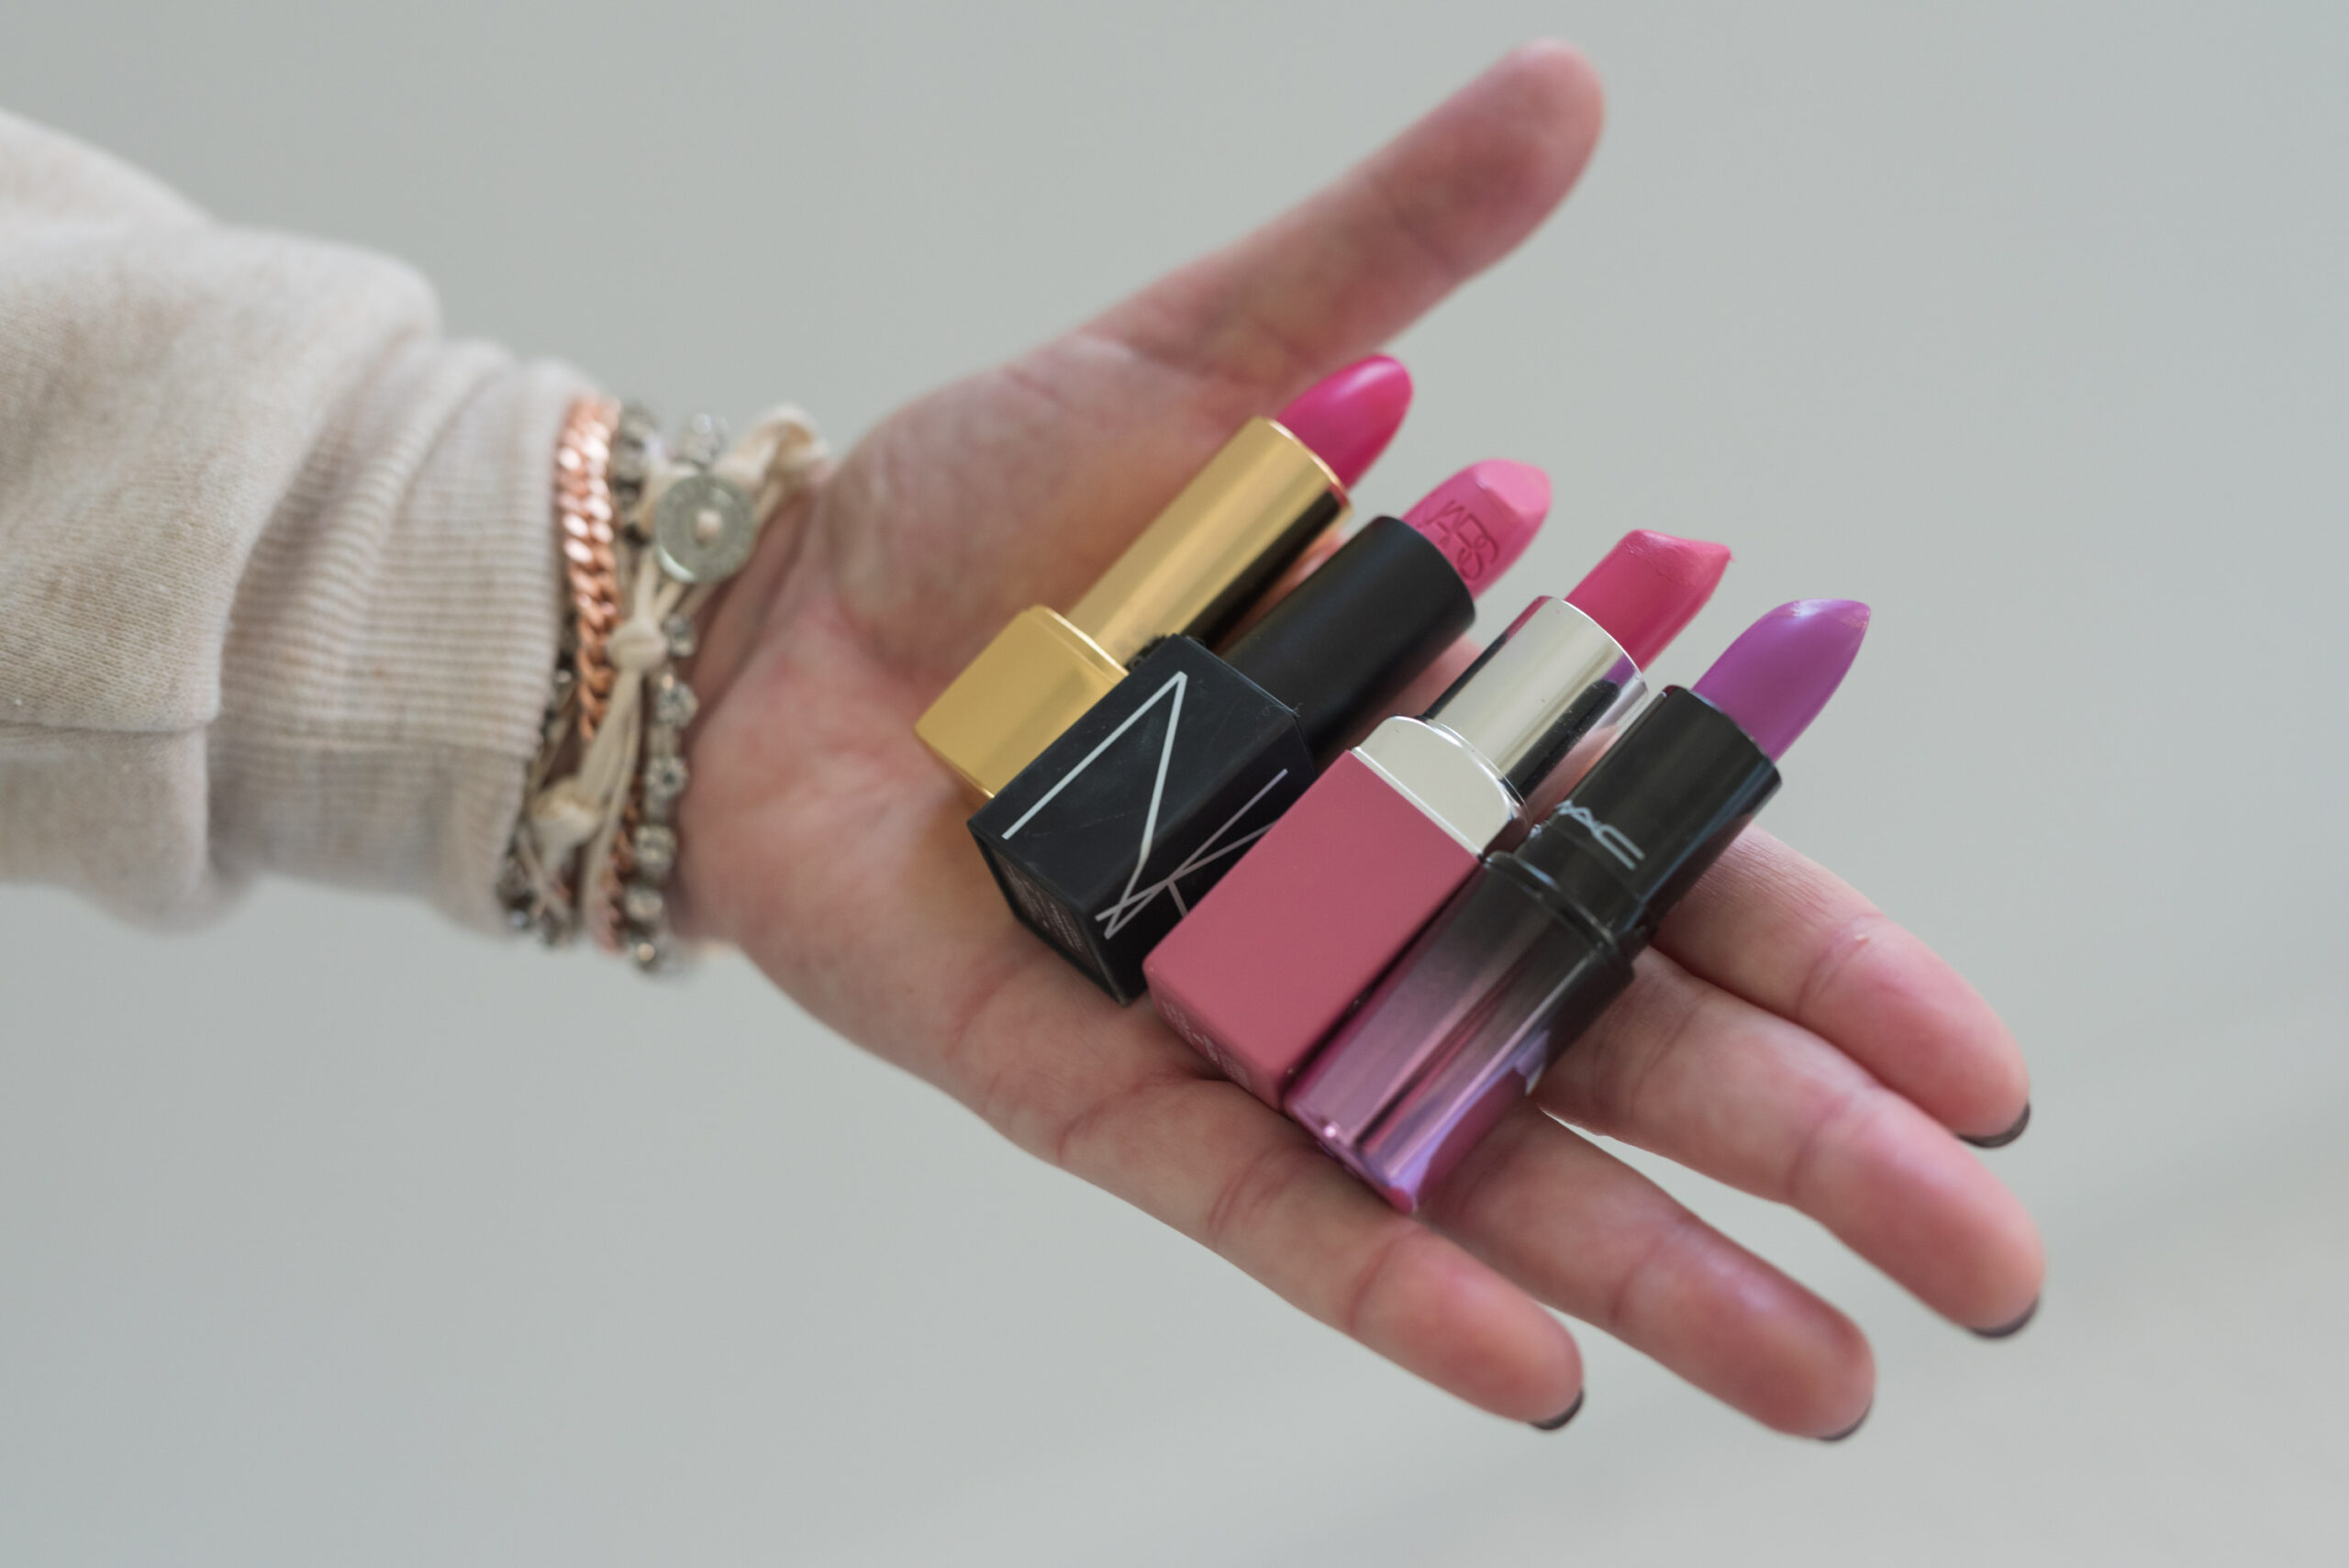 Nordstrom Beauty by popular Houston beauty blog, Fancy Ashley: image of a woman holding Nars lipstick, Mac lipstick, Clinique lipstick, and Let Them Eat Cake lipstick.